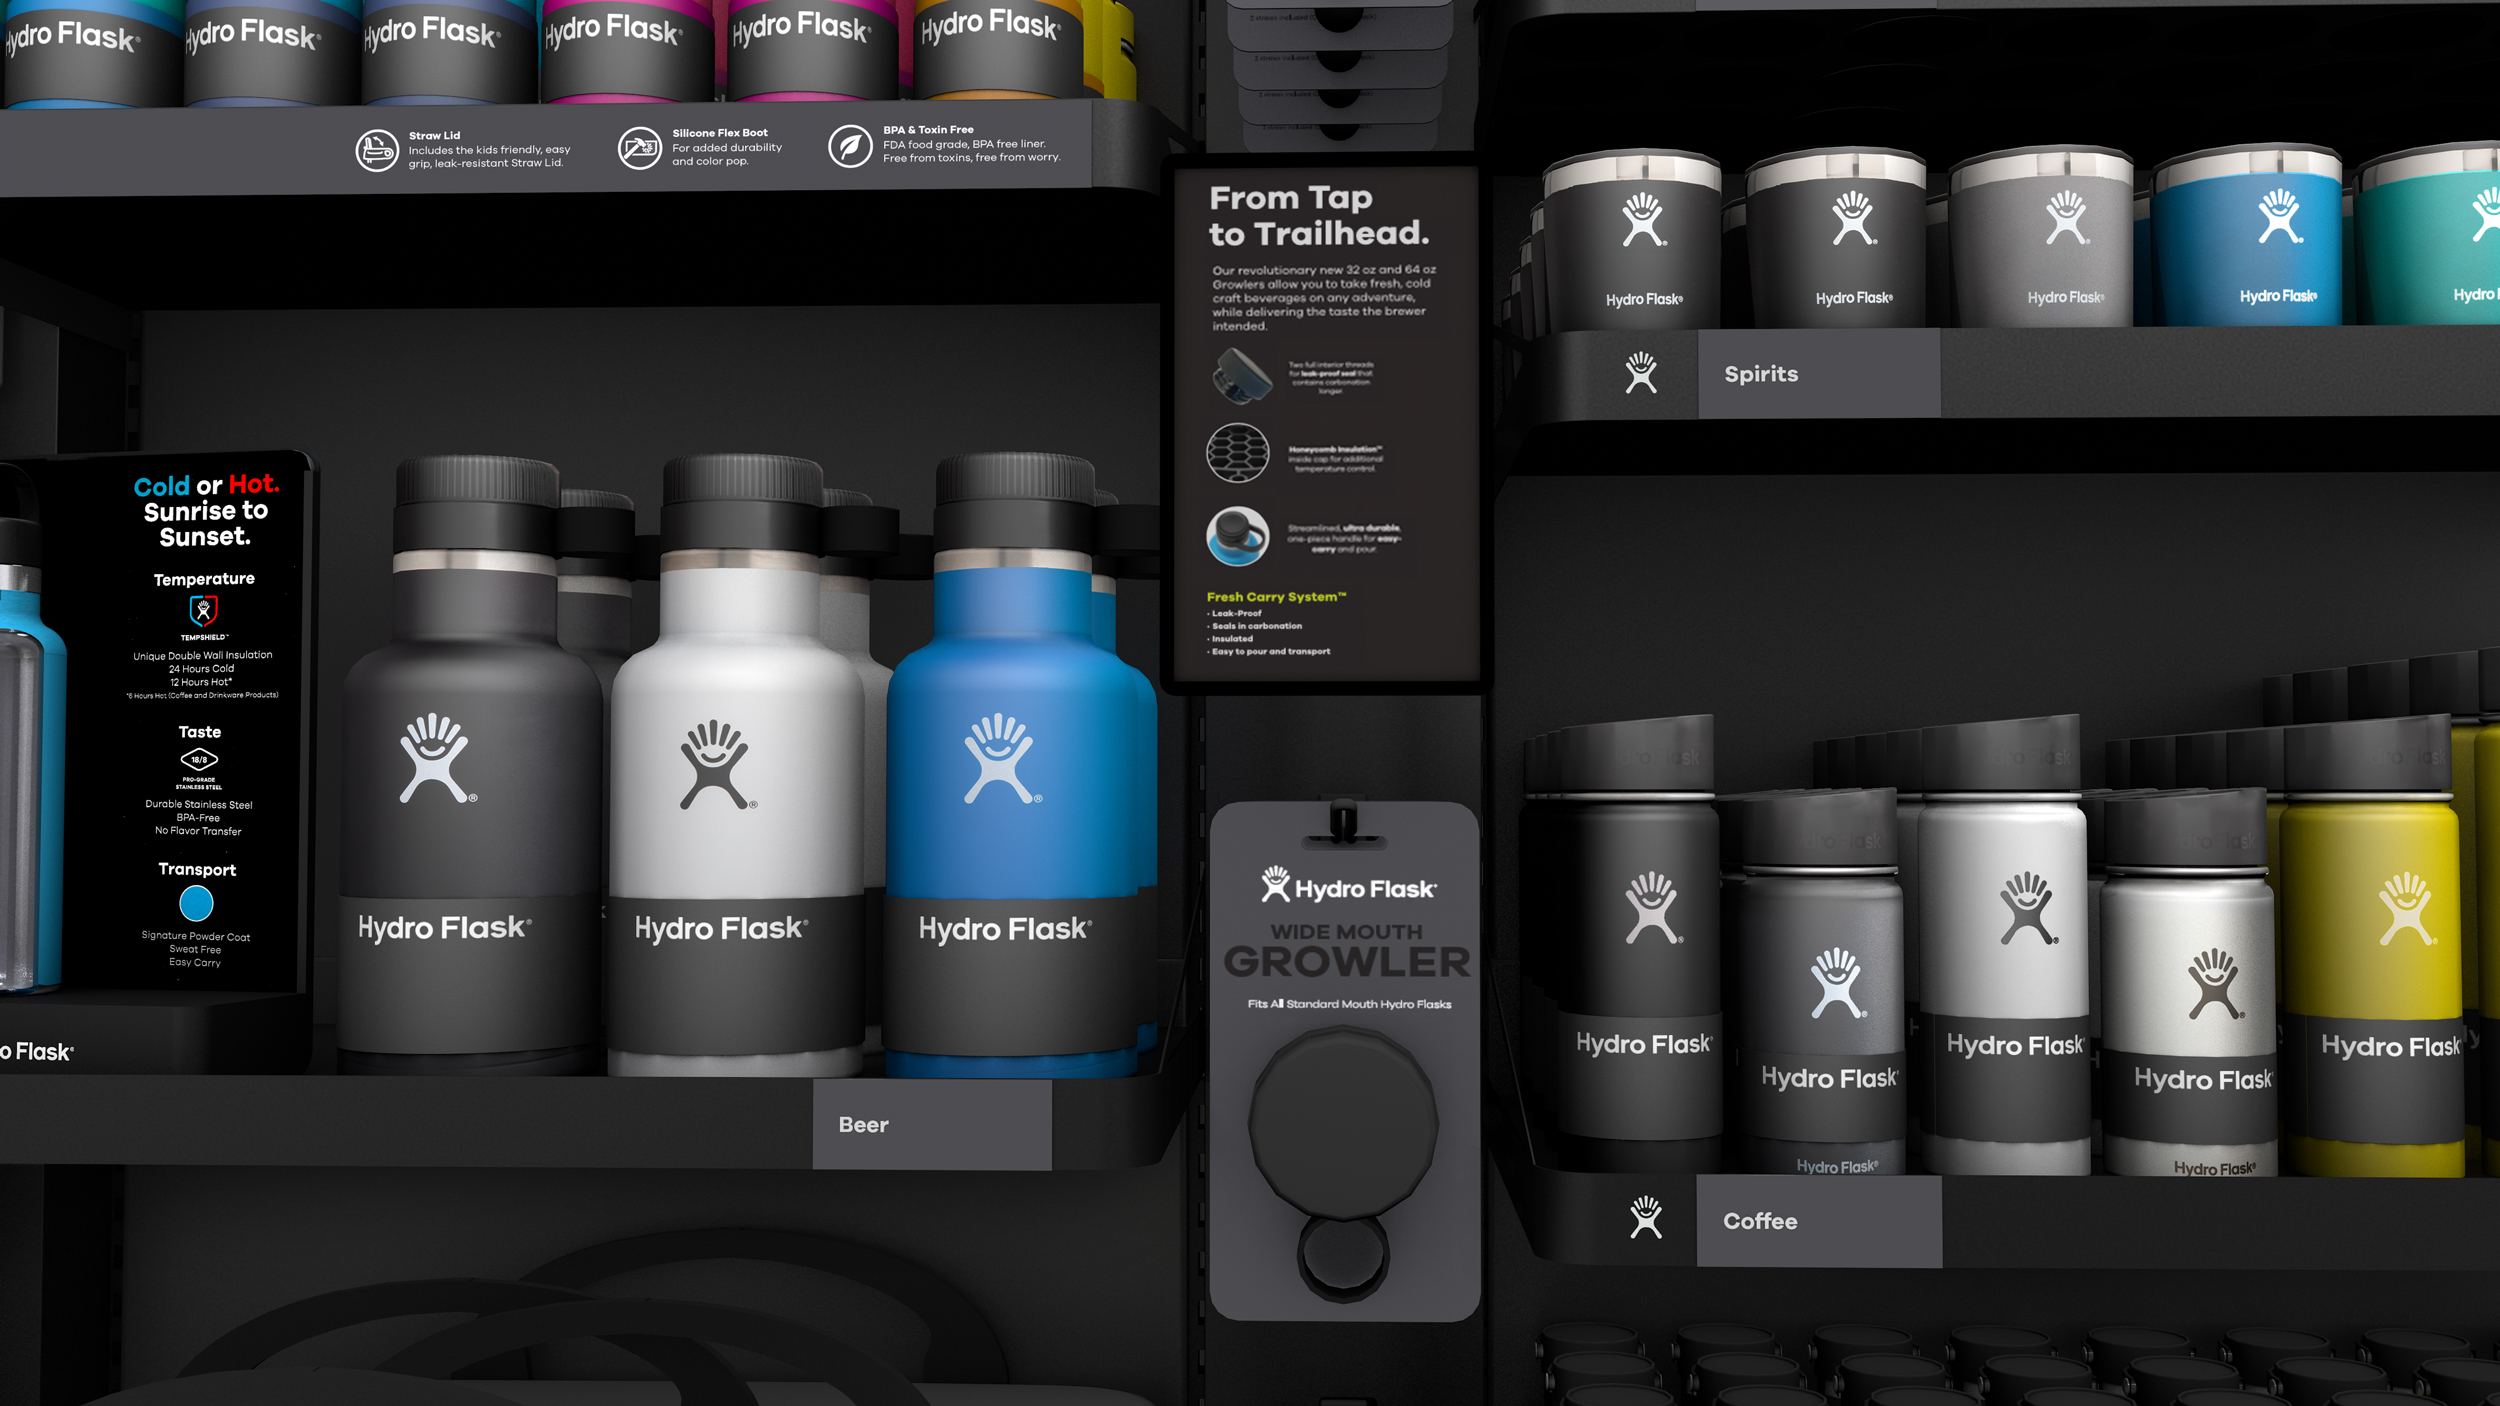 A digital render of many different kinds of hydro flask bottles on a product shelf